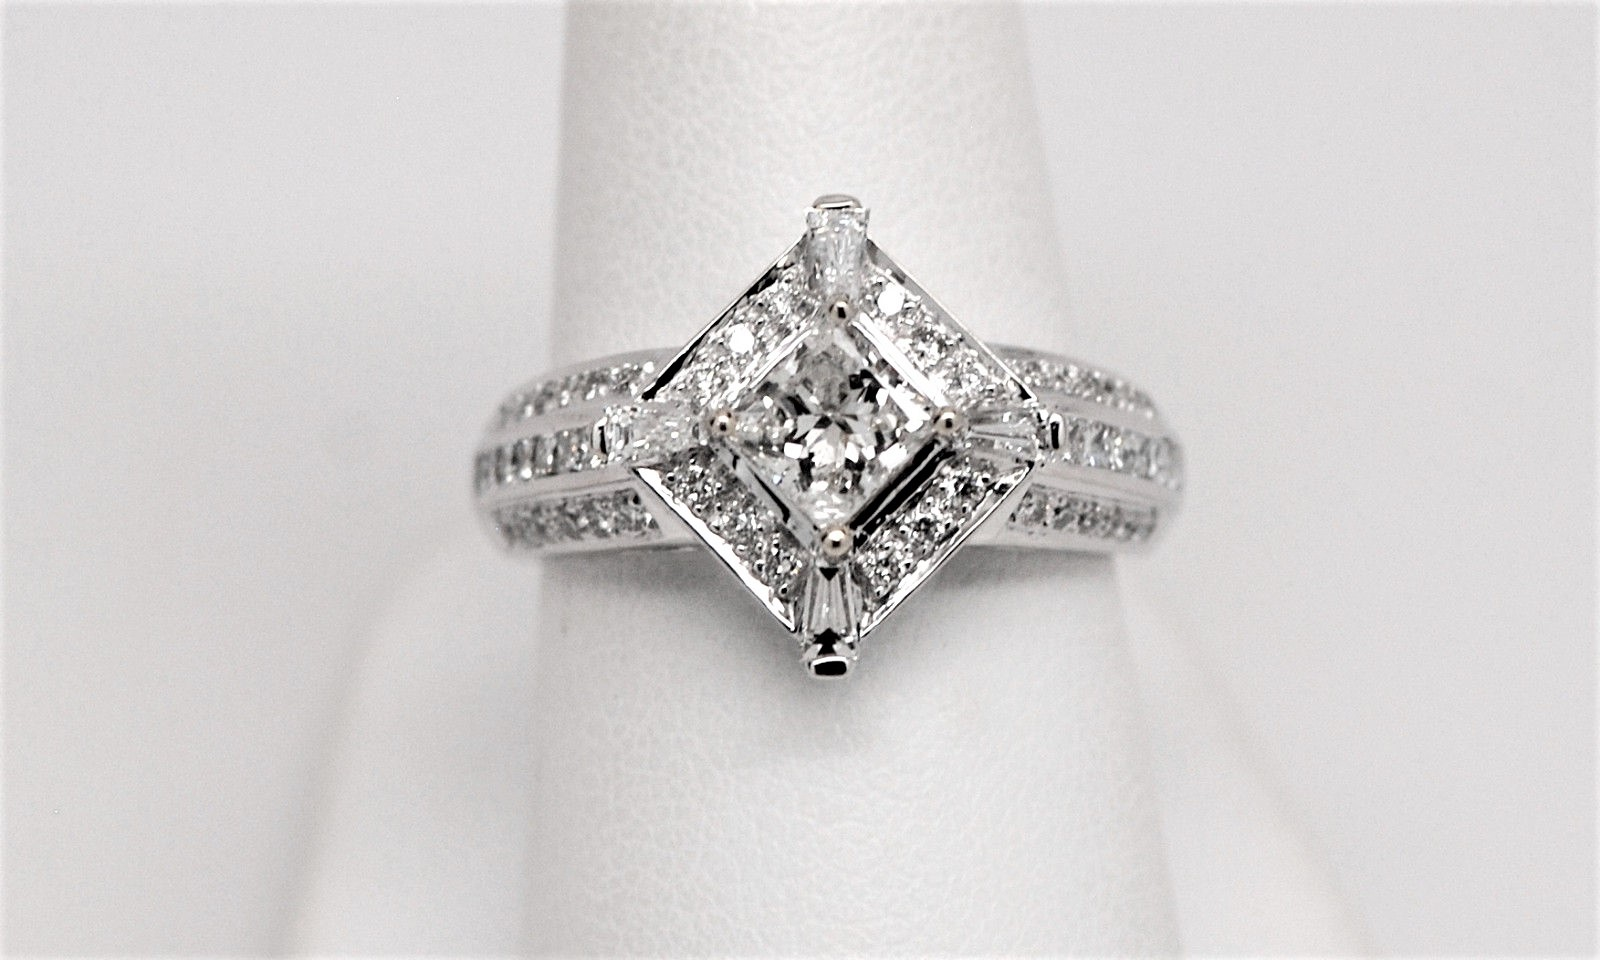 baguettes rings engagement fine jewelry ring products diamond galith baguette collections cushion three stone